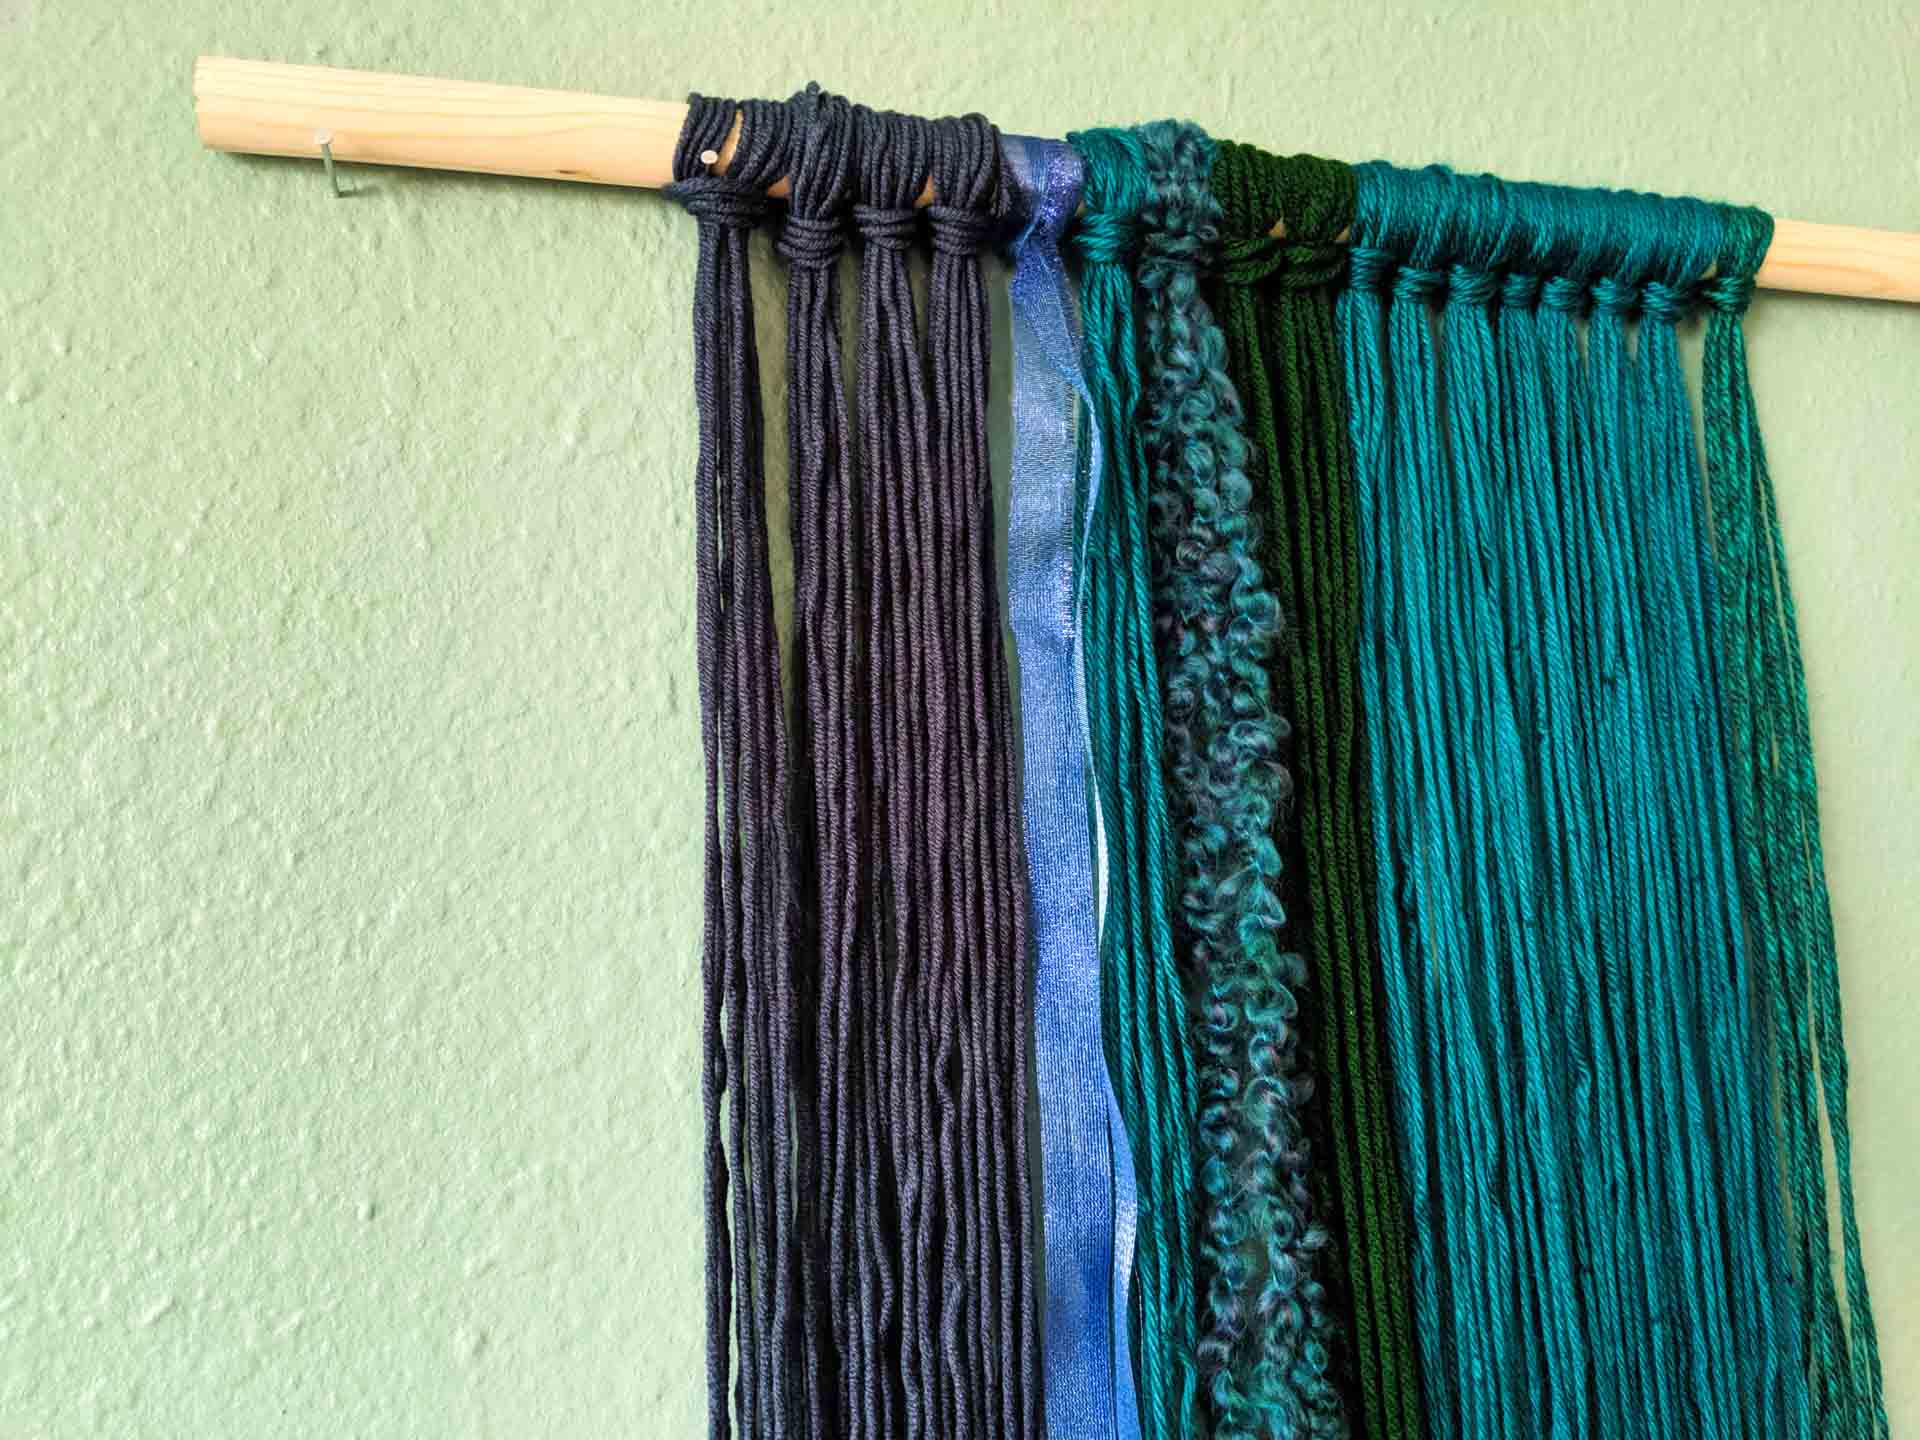 Continue adding yarn to the wall hanging